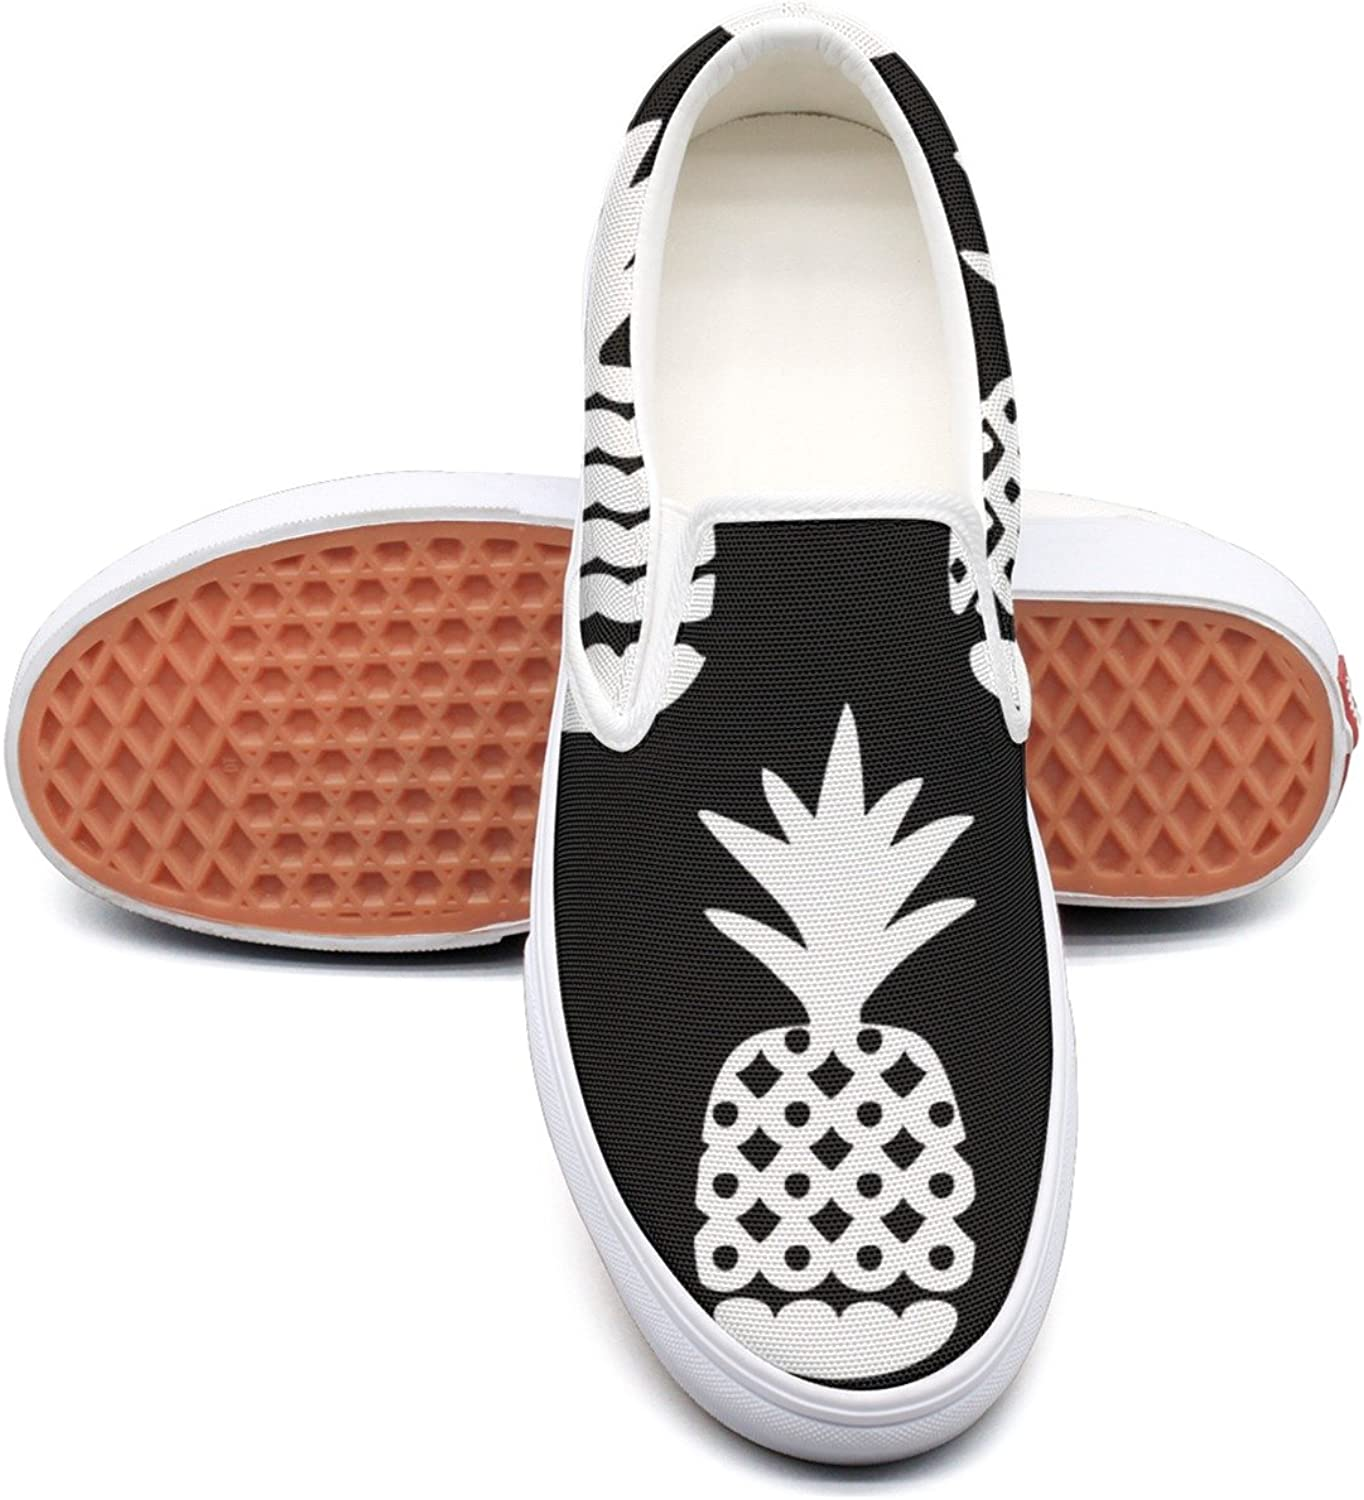 SEERTED Black and White Geometric Pineapple Fruit Top Sneakers for Women